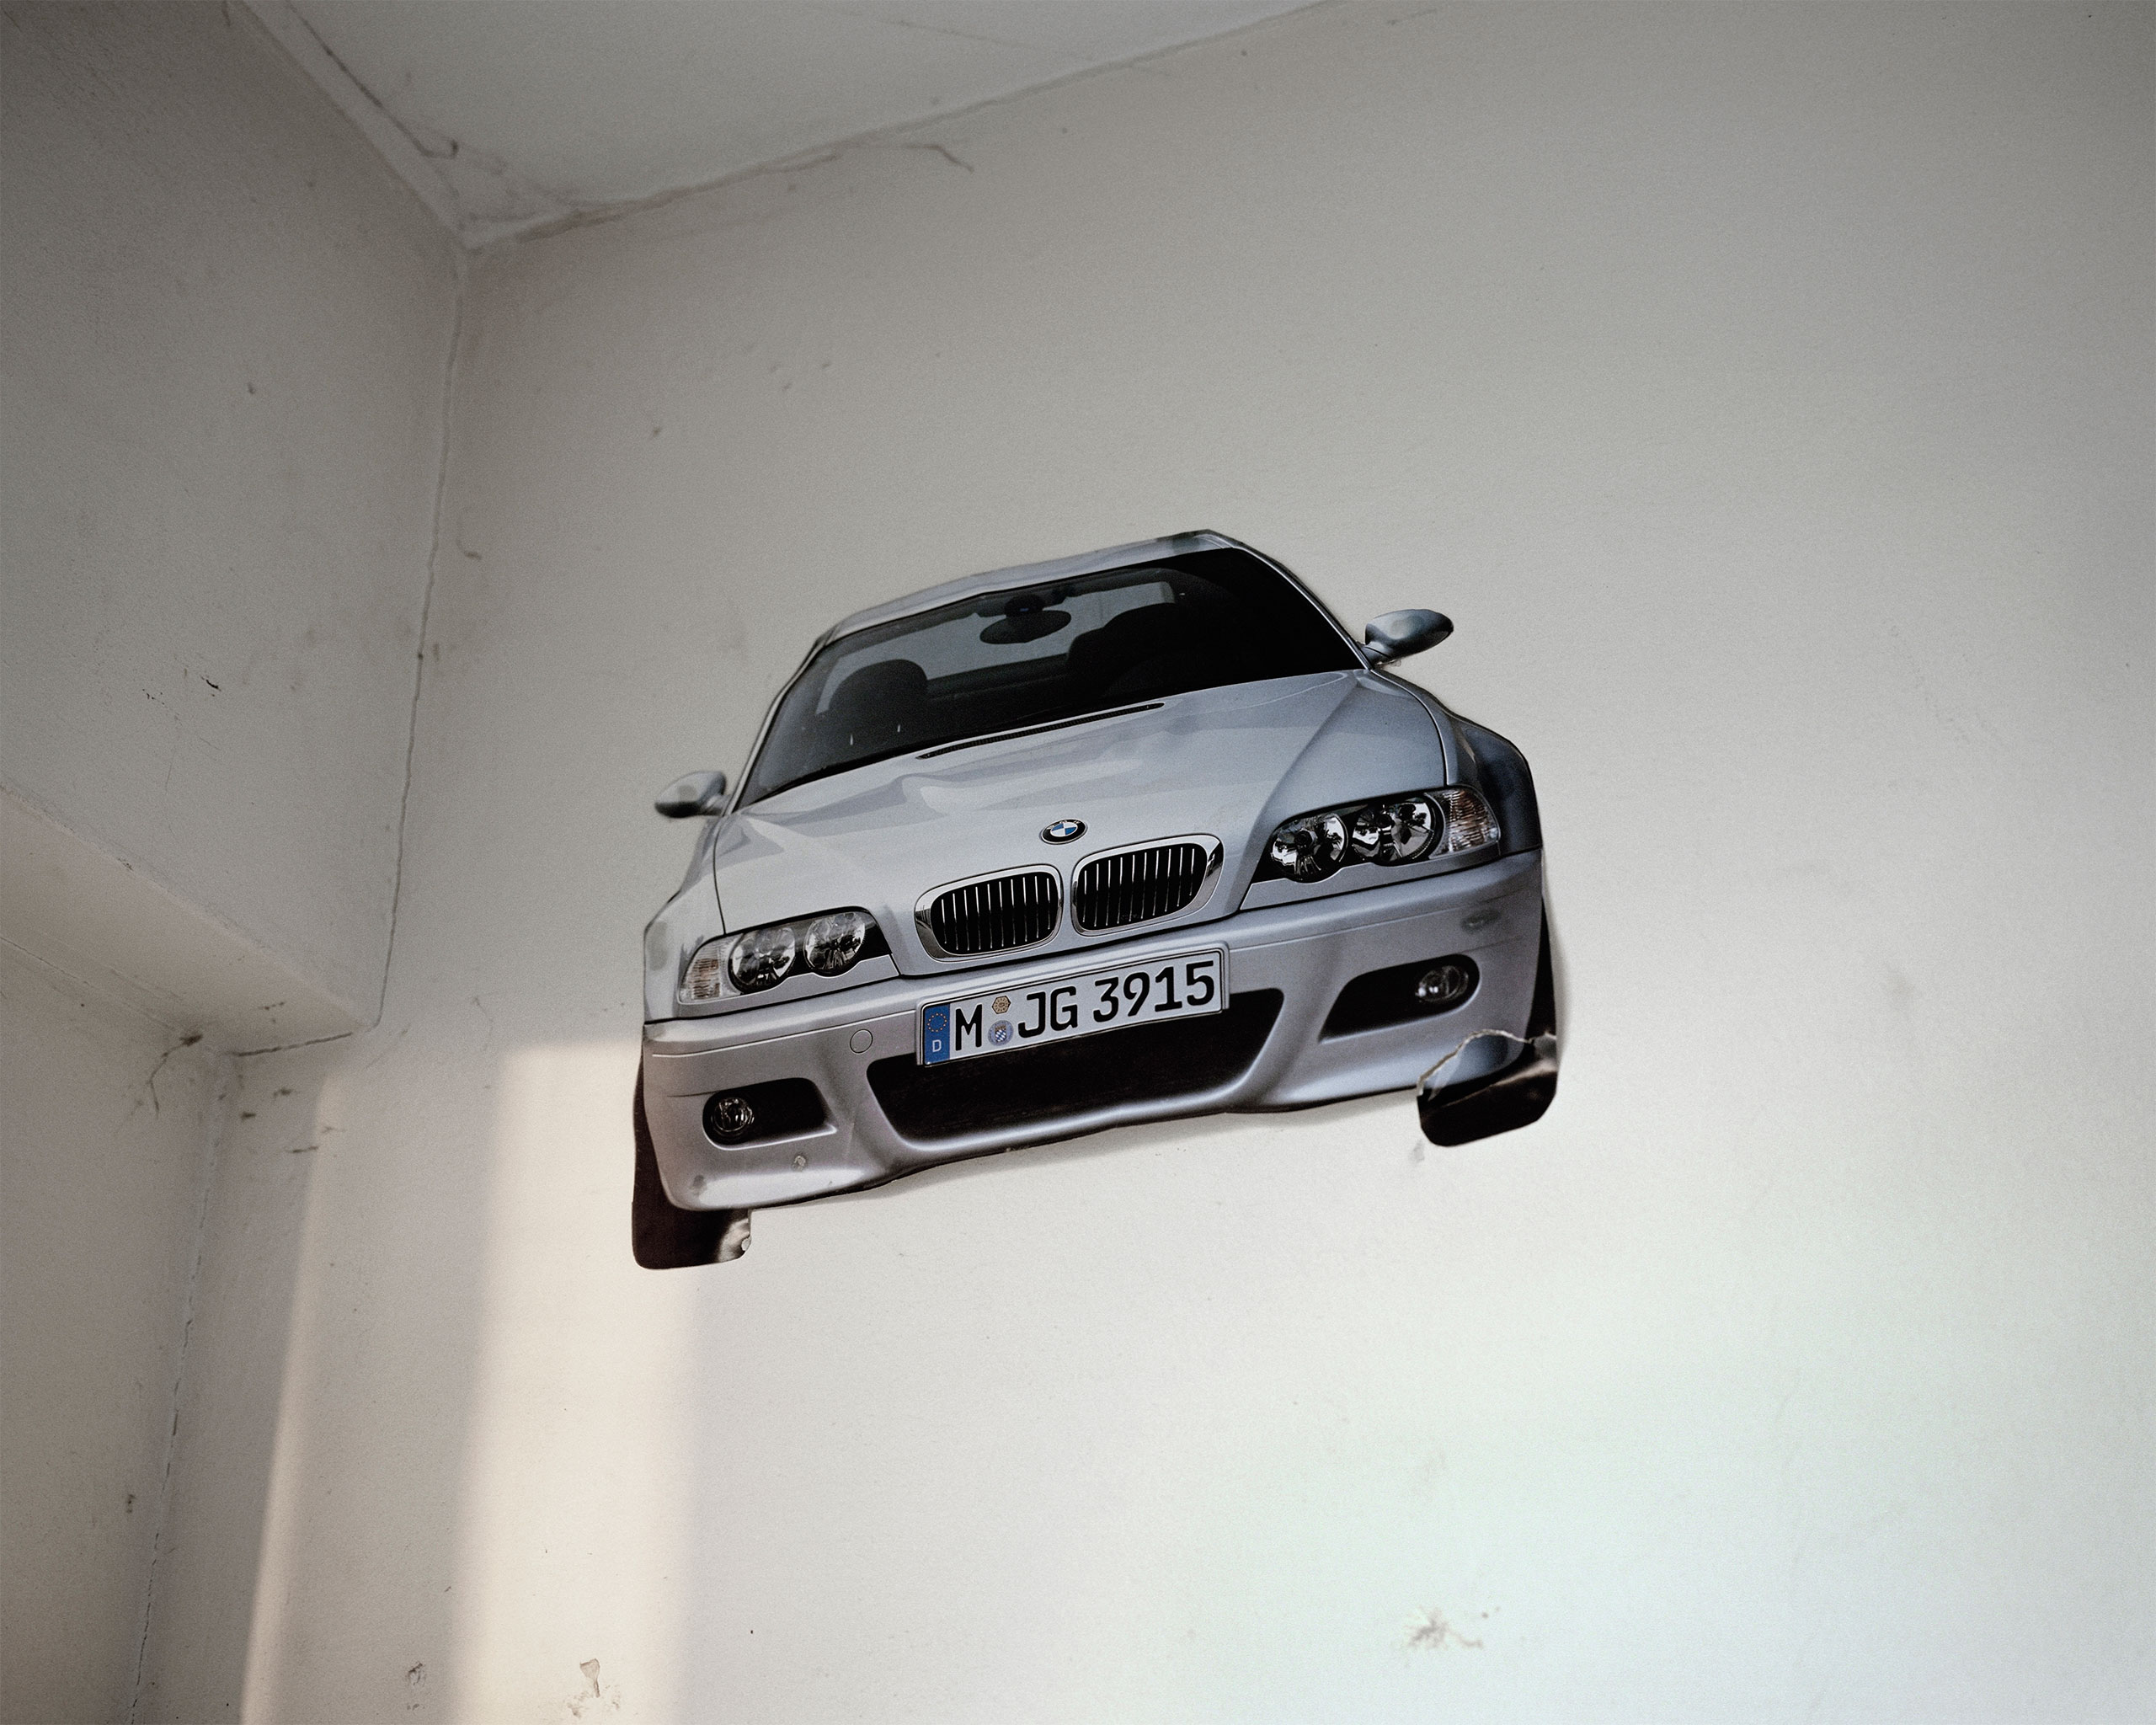 BMW, Ponte City, Johannesburg, South Africa, 2008.